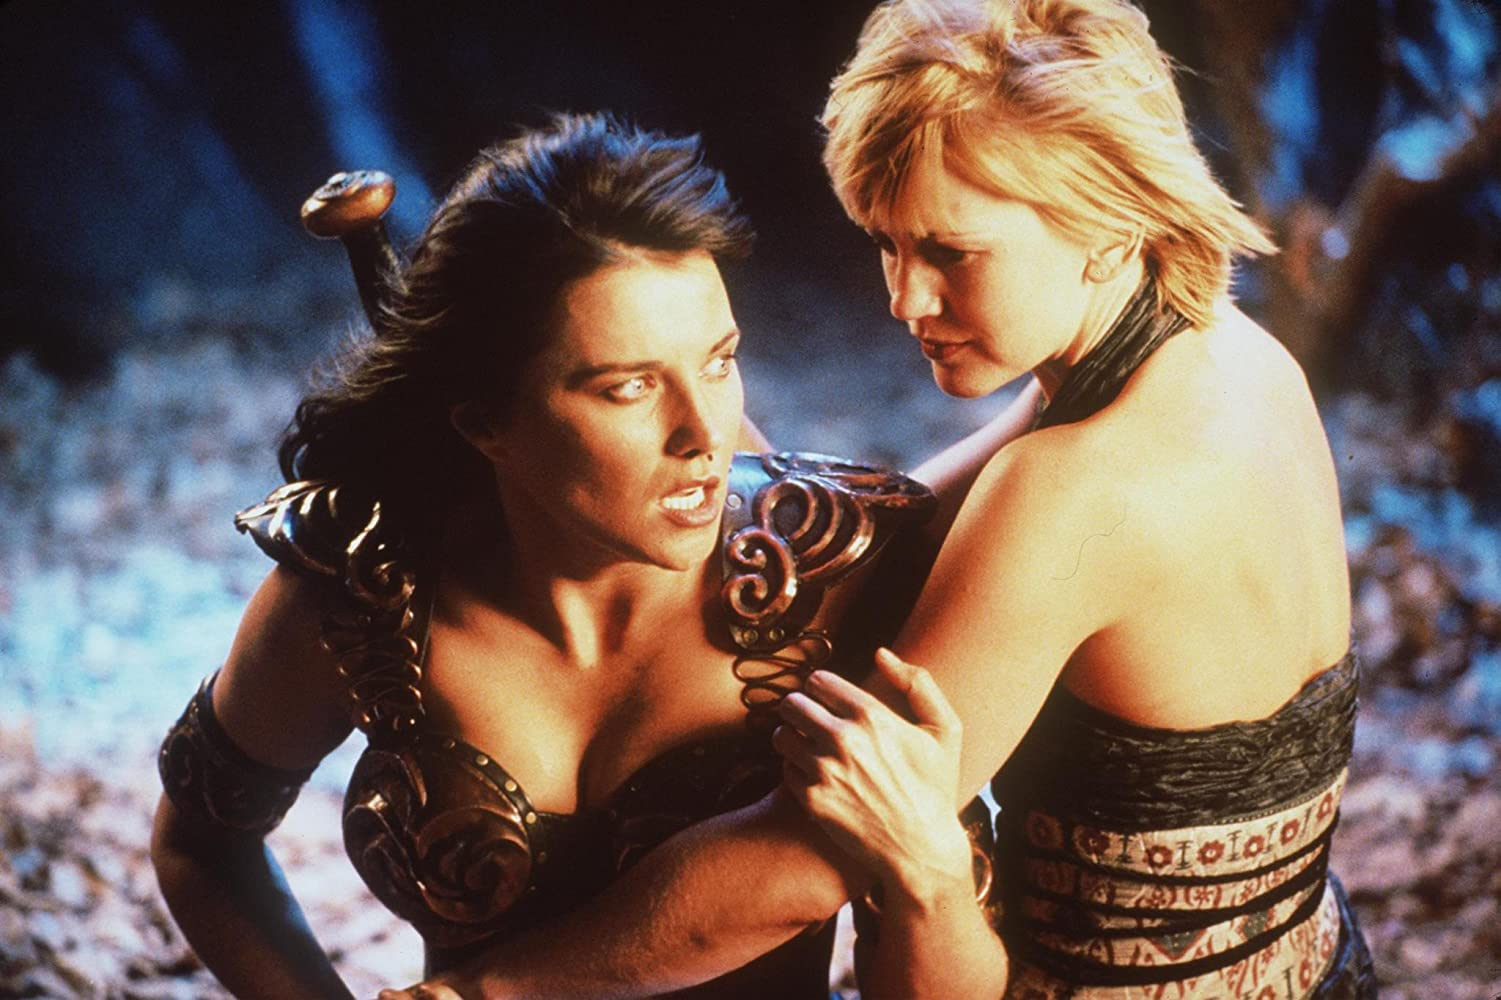 The Horniest Episodes Of Xena: Warrior Princess